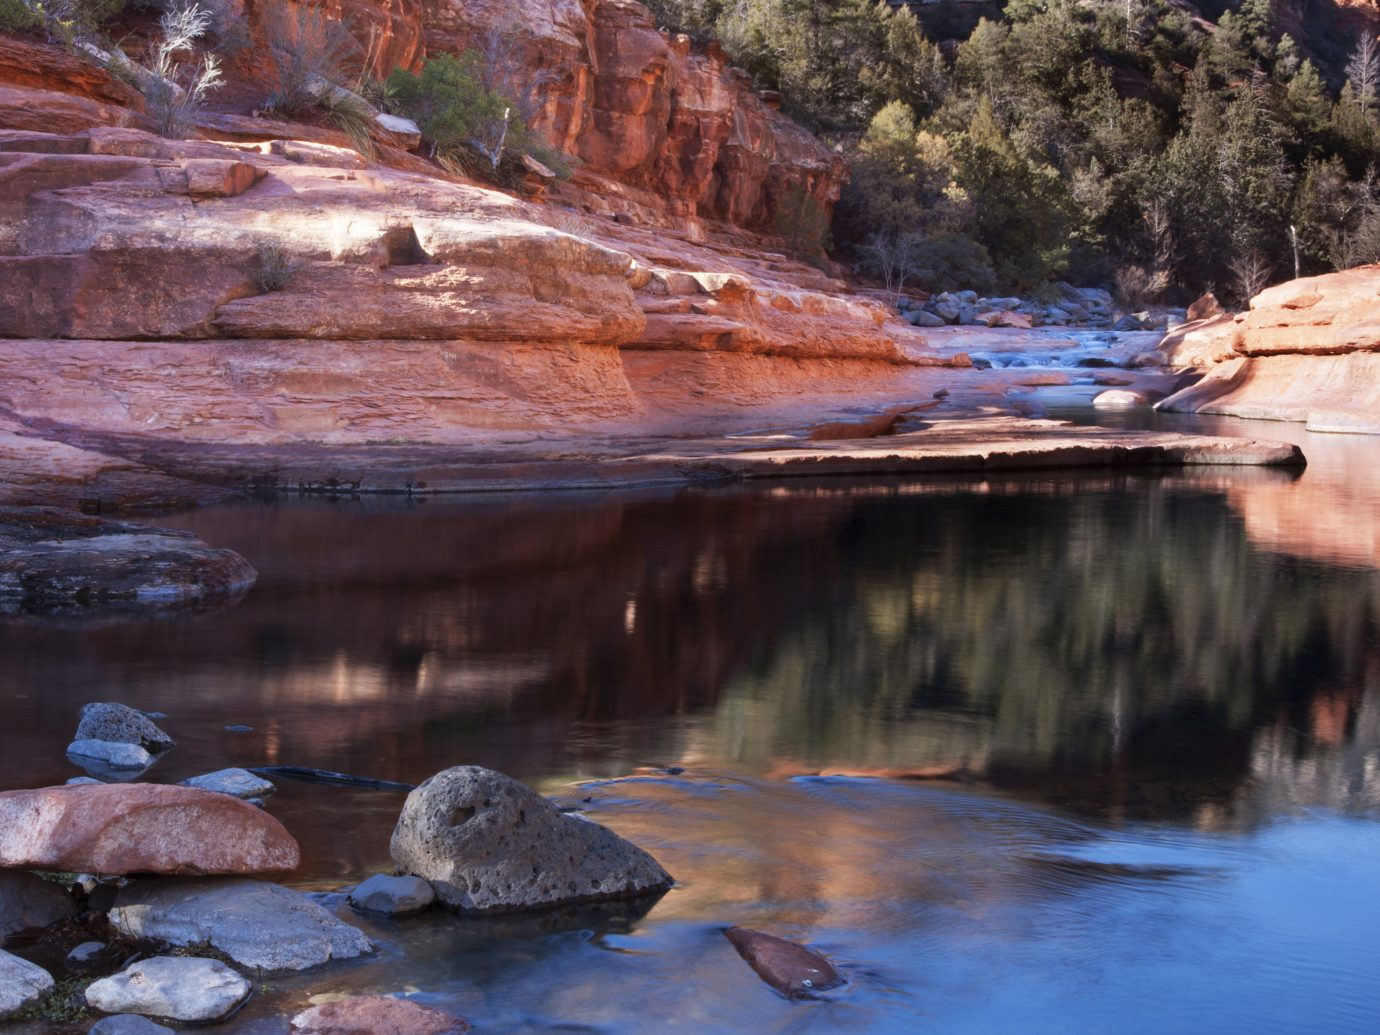 Trip Ideas outdoor Nature reflection water wilderness landform rock valley body of water tree River mountain season canyon landscape stream water feature autumn Lake Sea geology material park stone